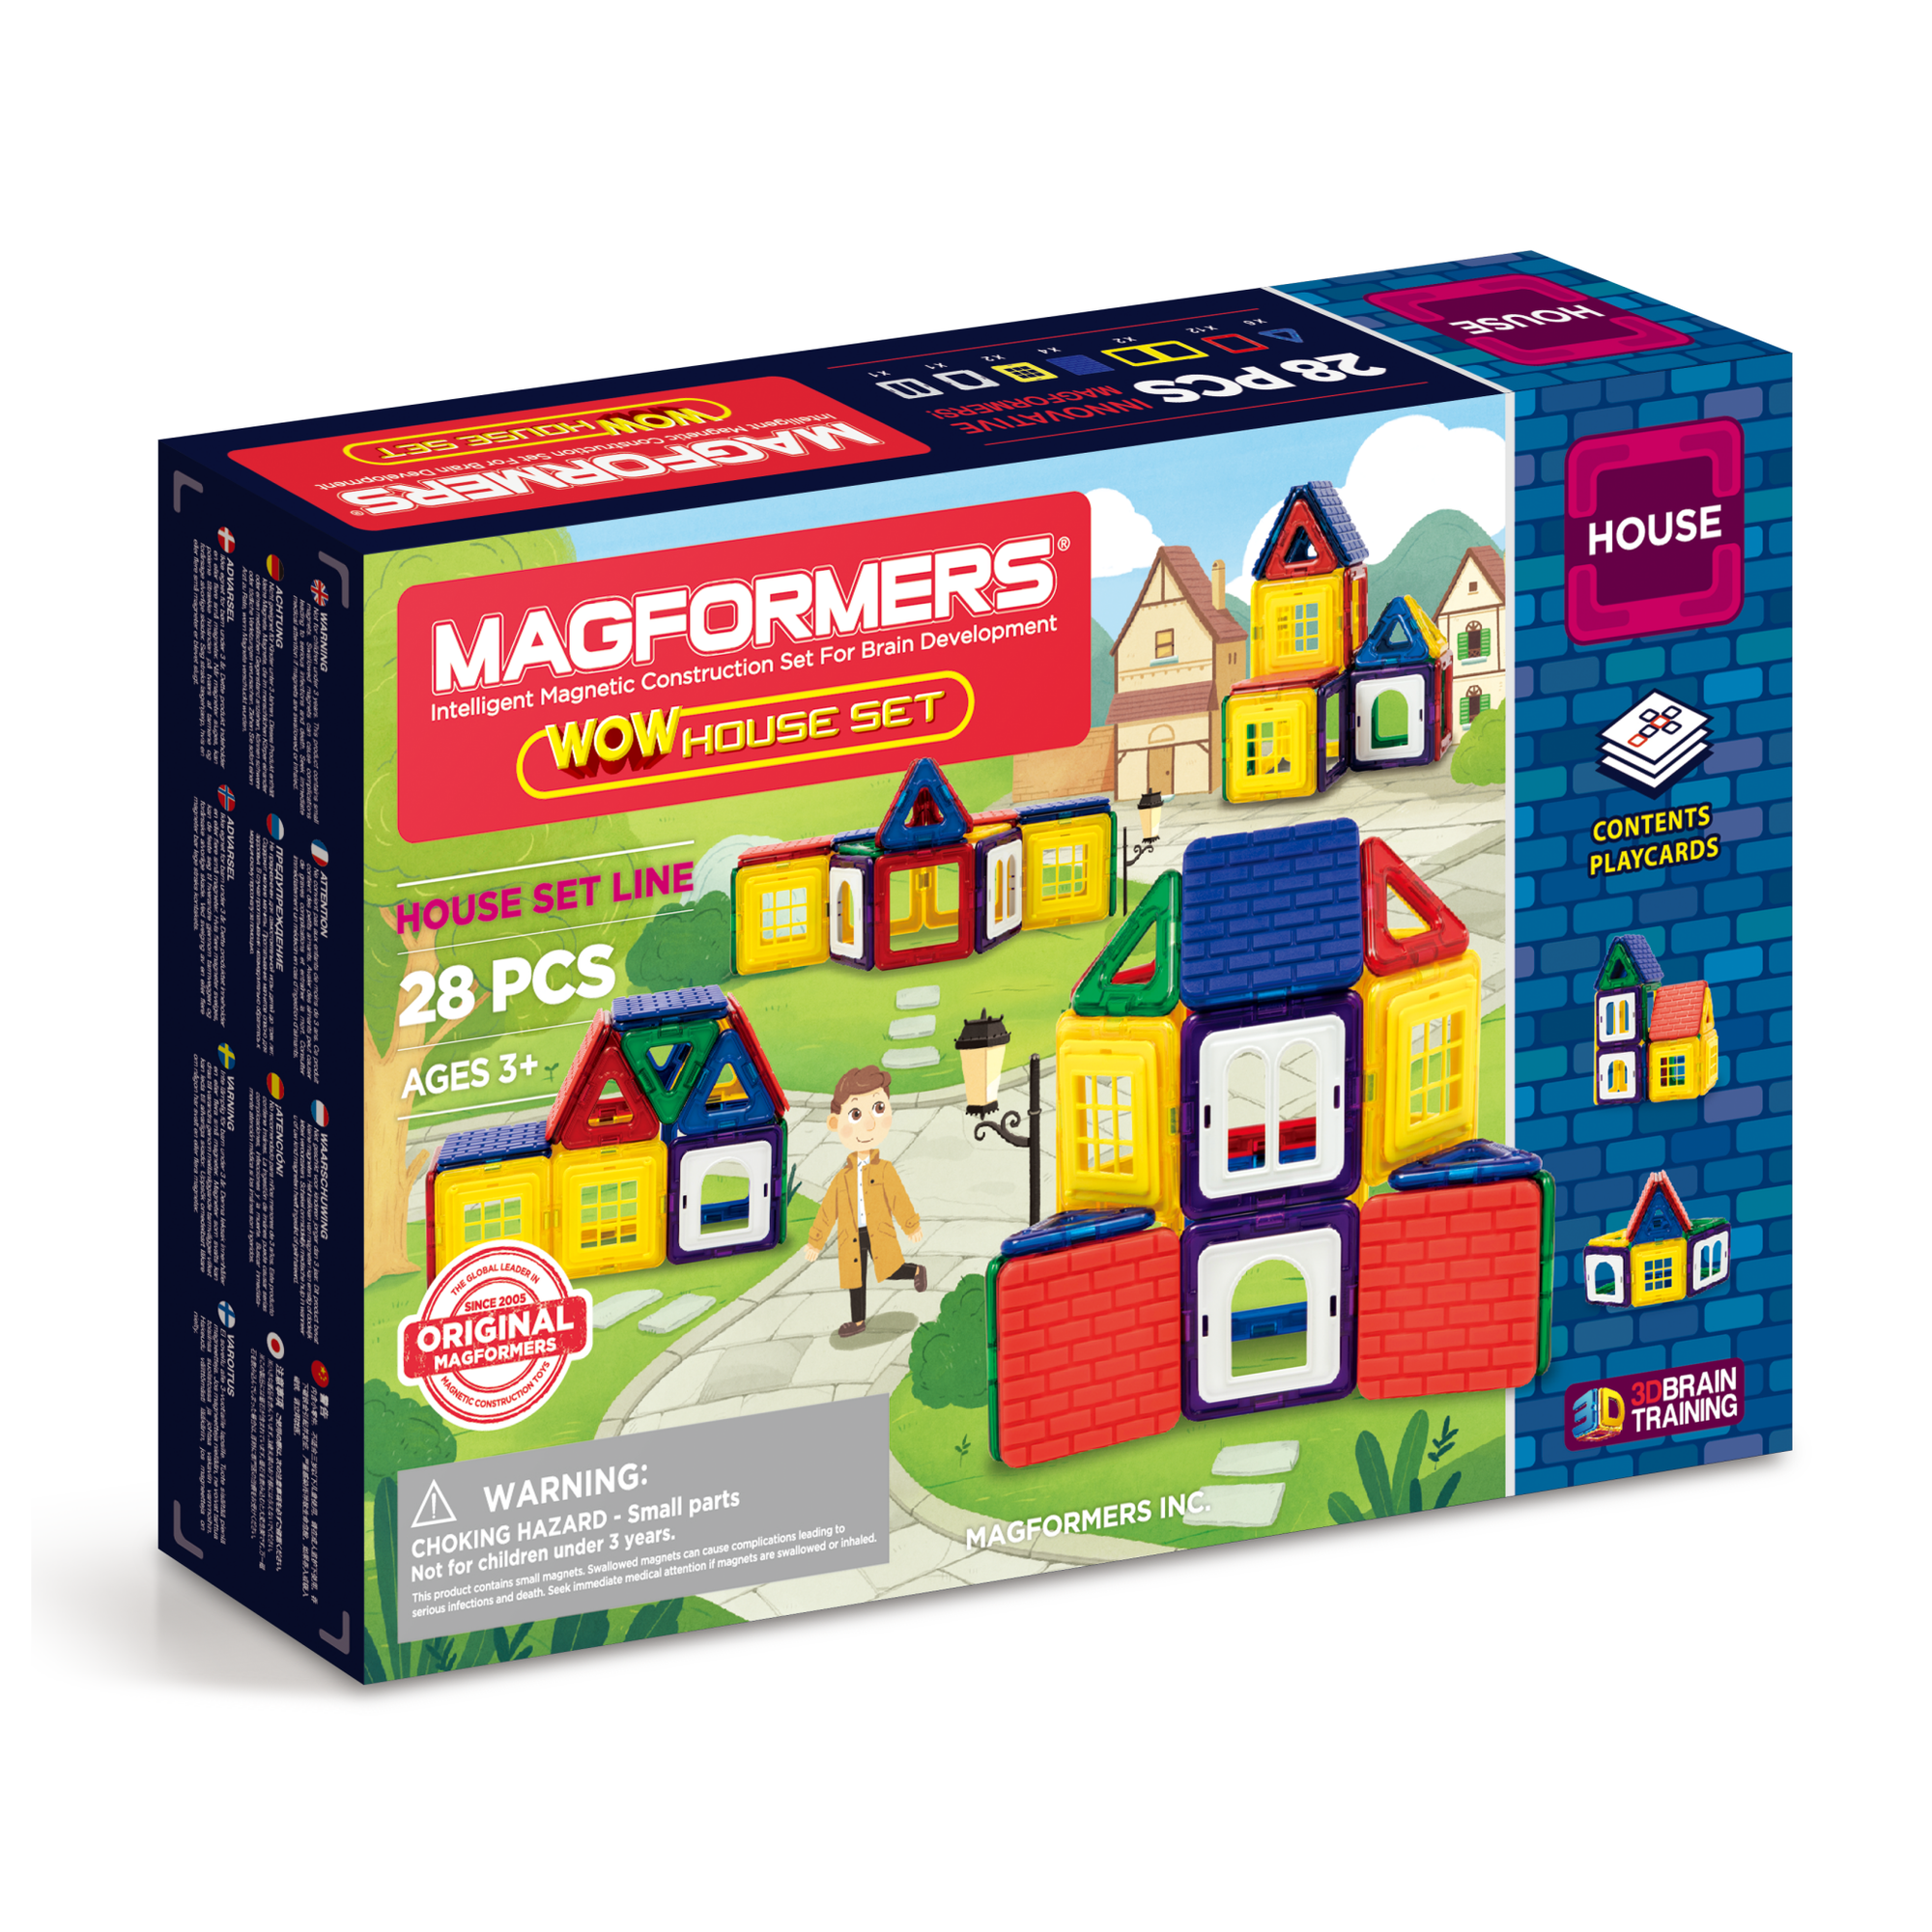 Magformers WOW House Set 28 Pc